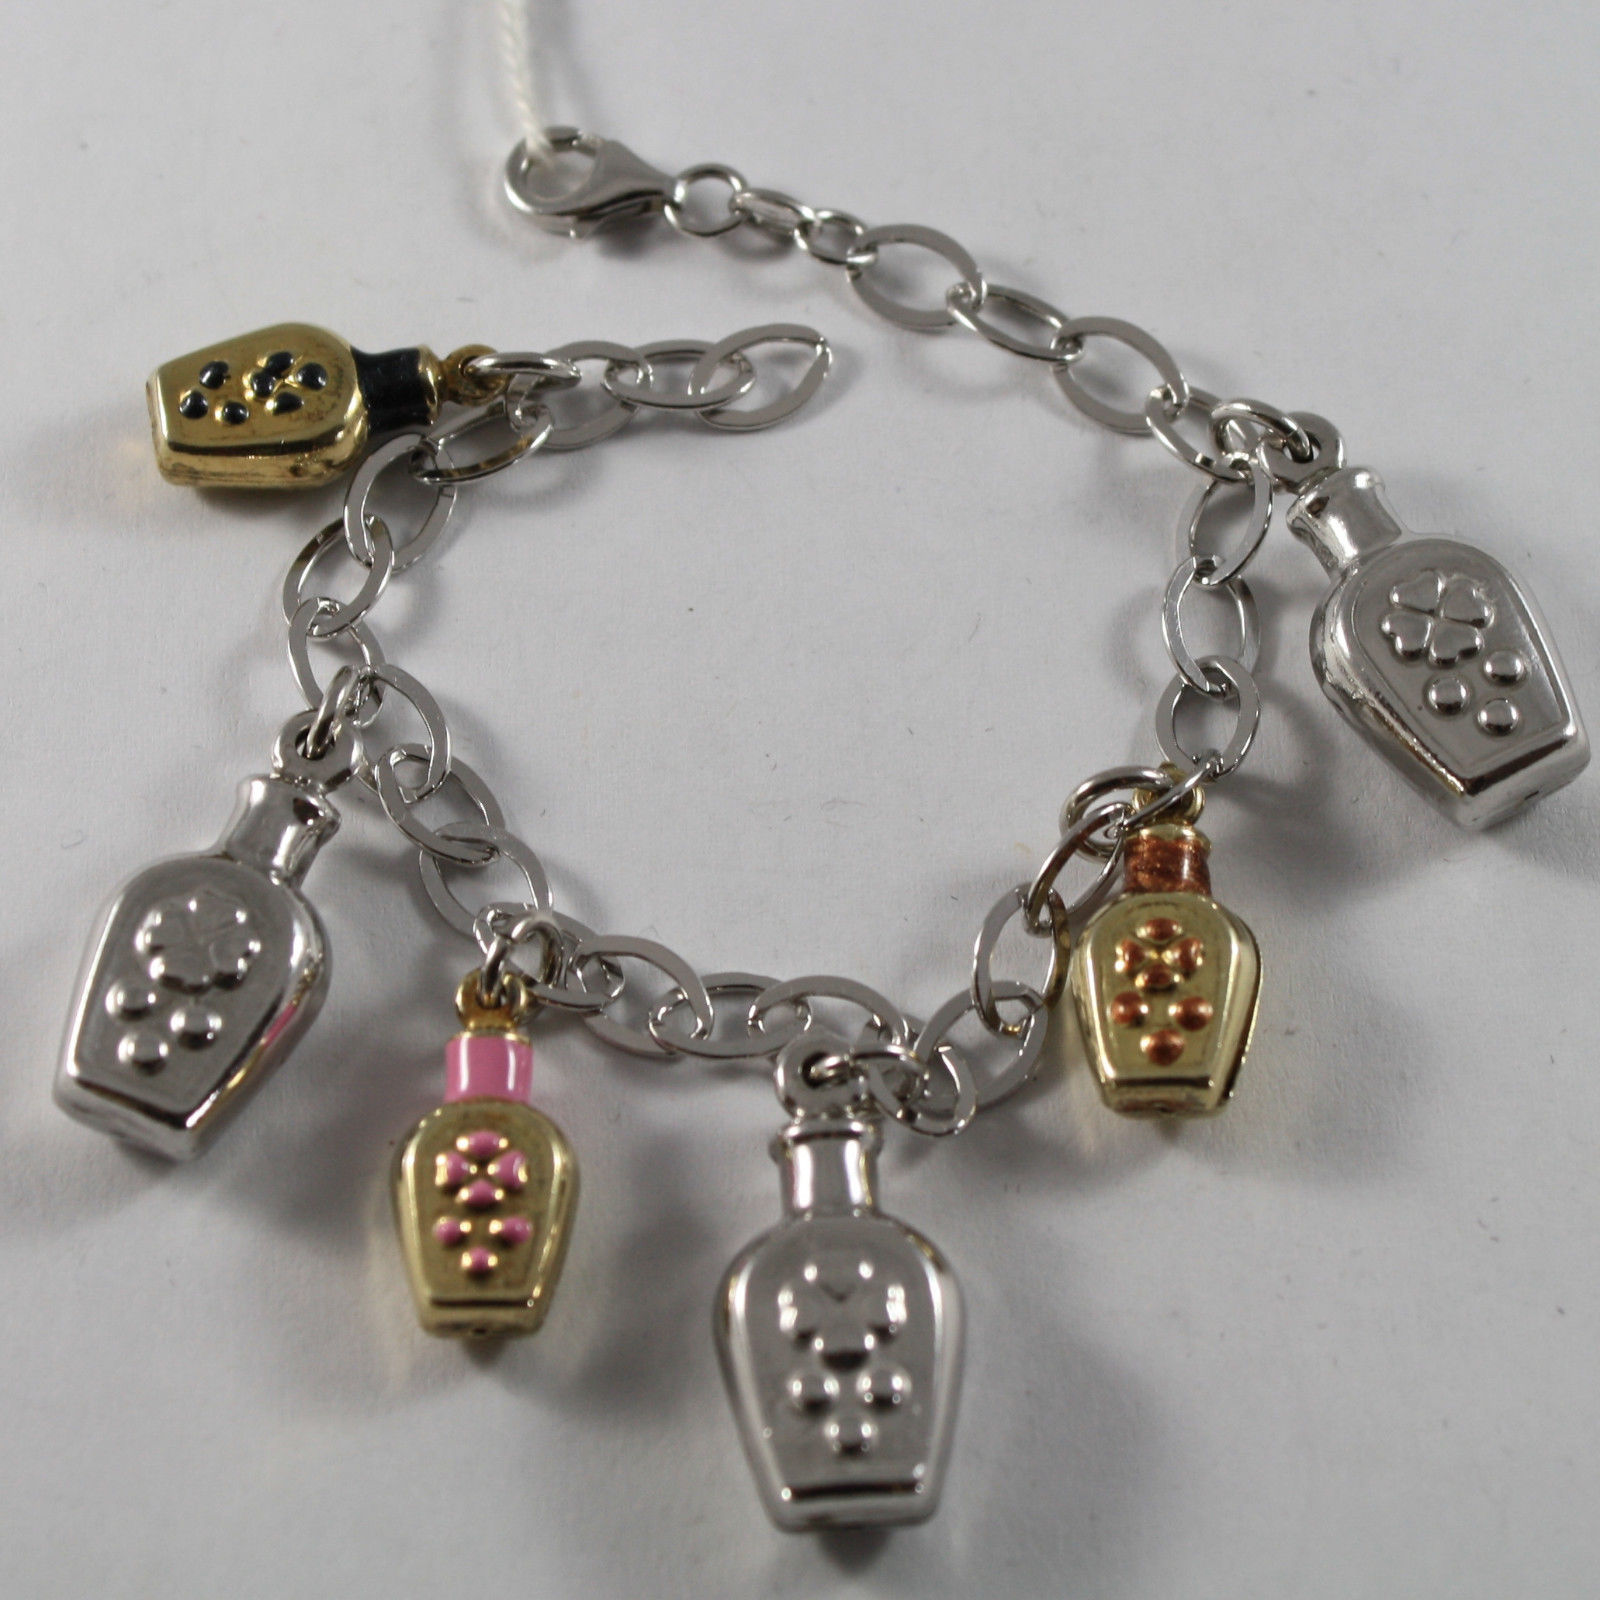 .925 RHODIUM SILVER AND YELLOW GOLD PLATED BRACELET WITH GLAZED BOTTLES